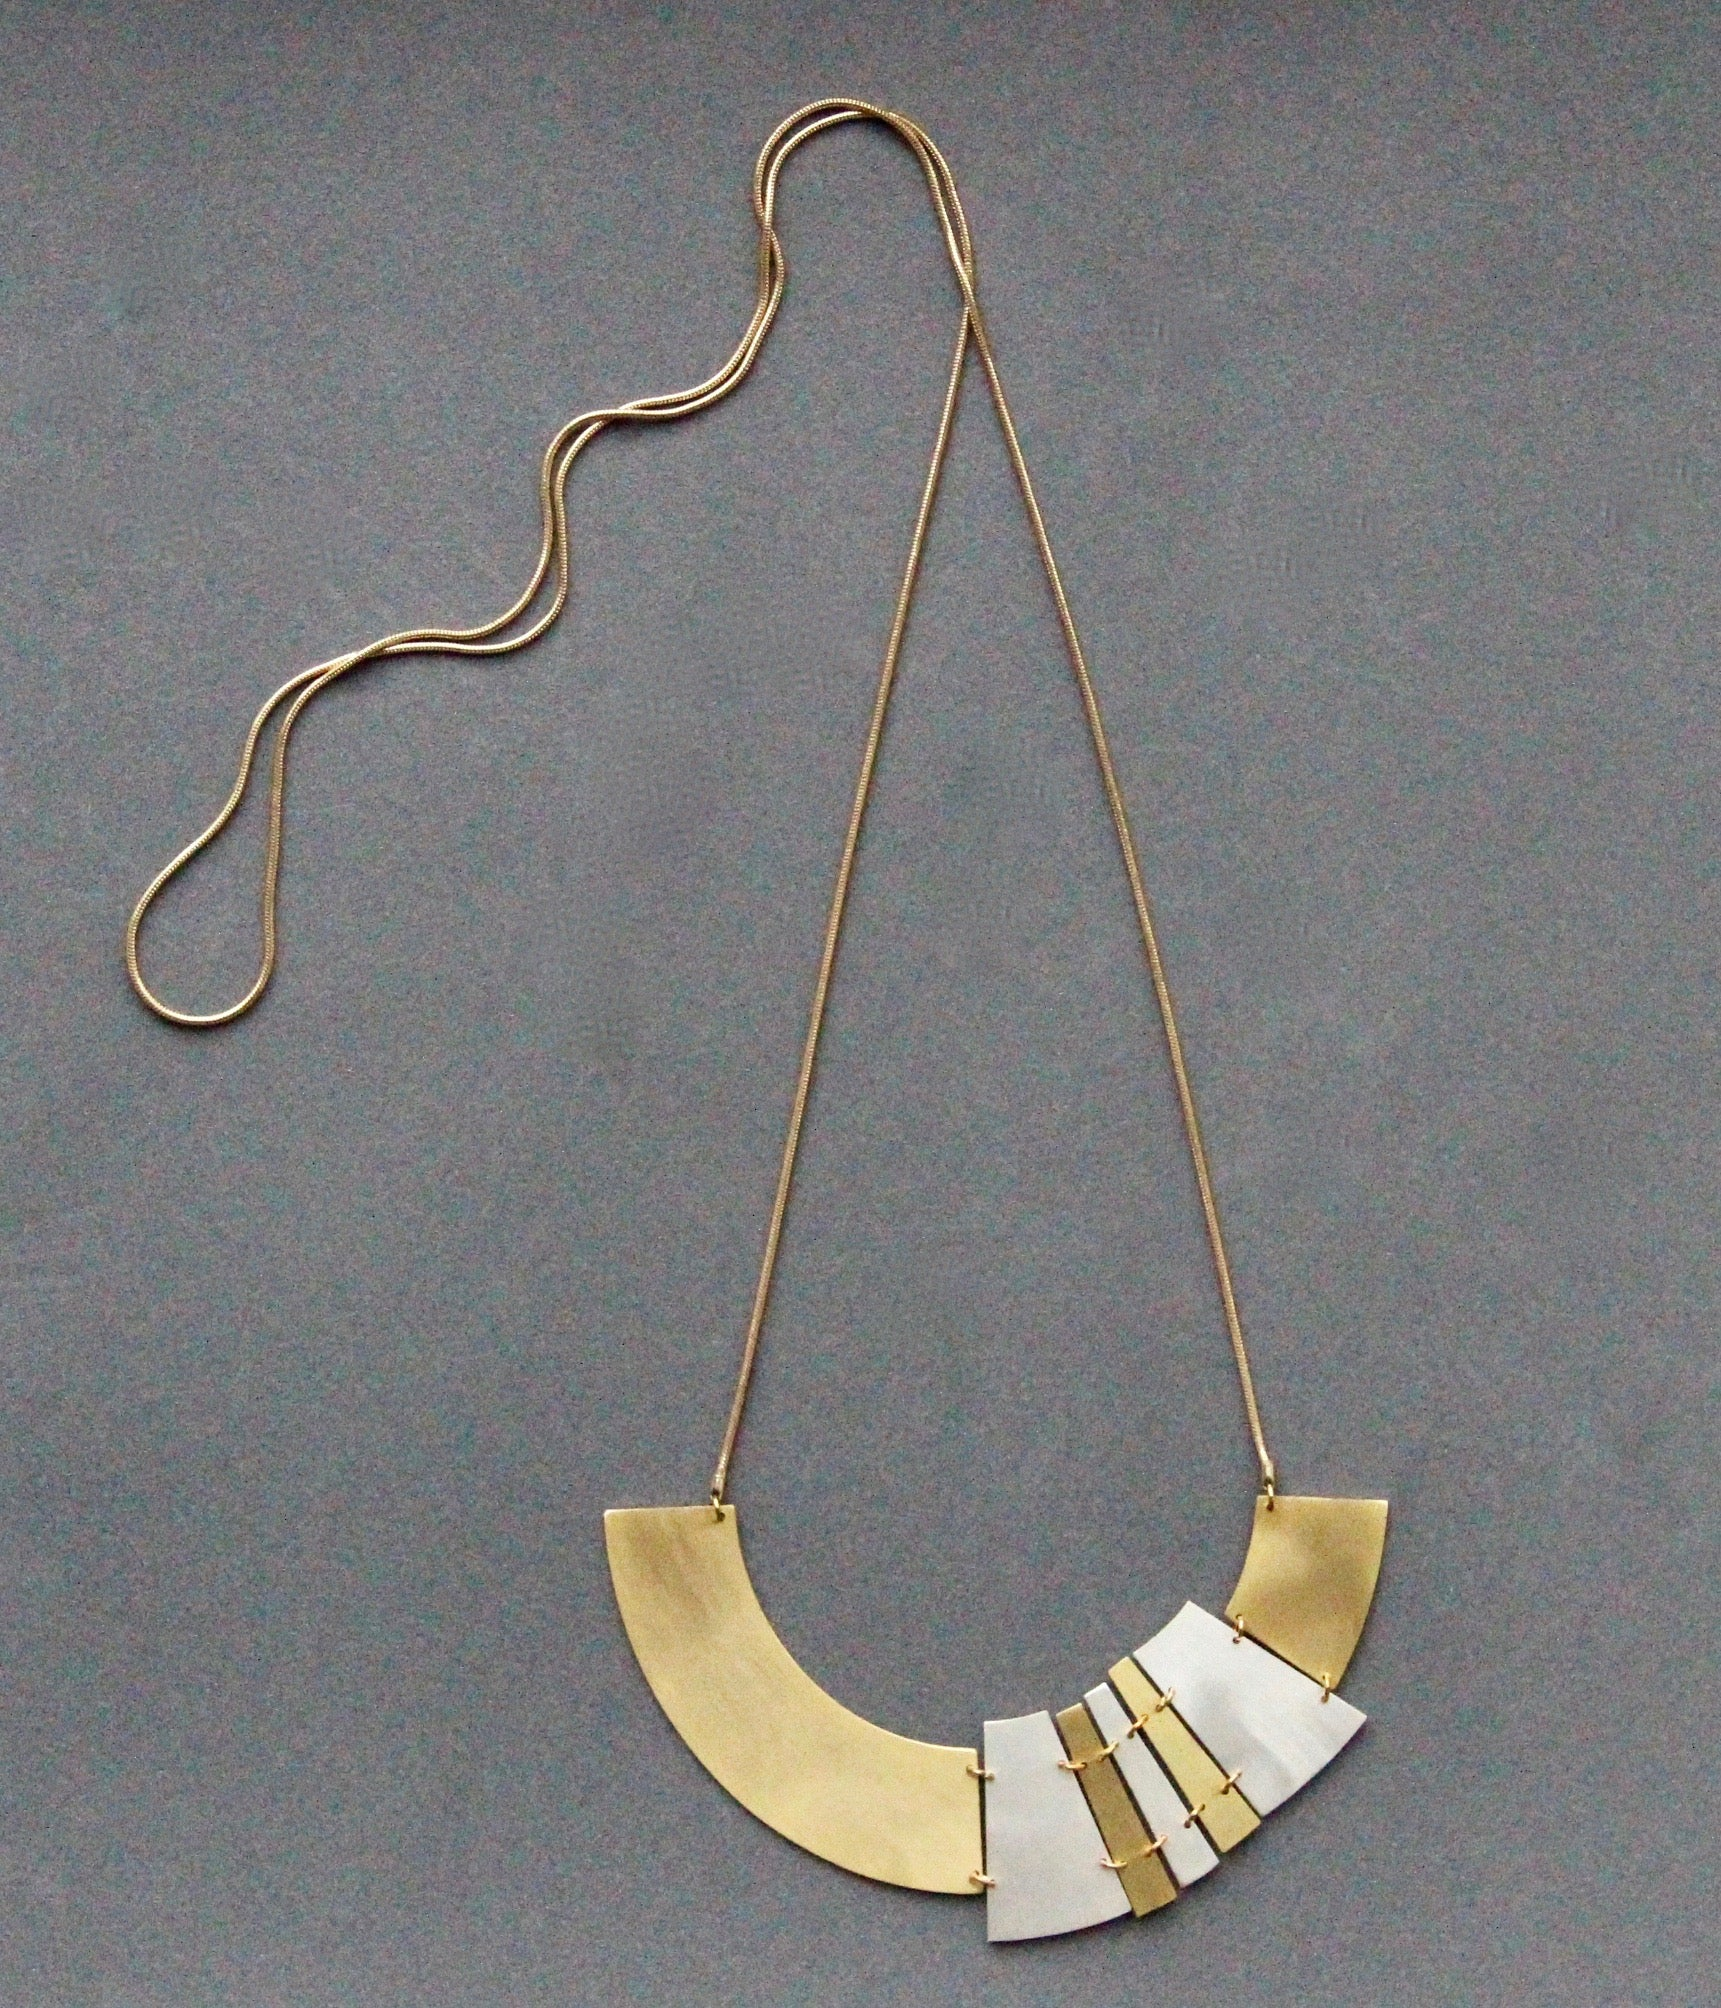 orig denison amanda neck jewellery contemporary pieces